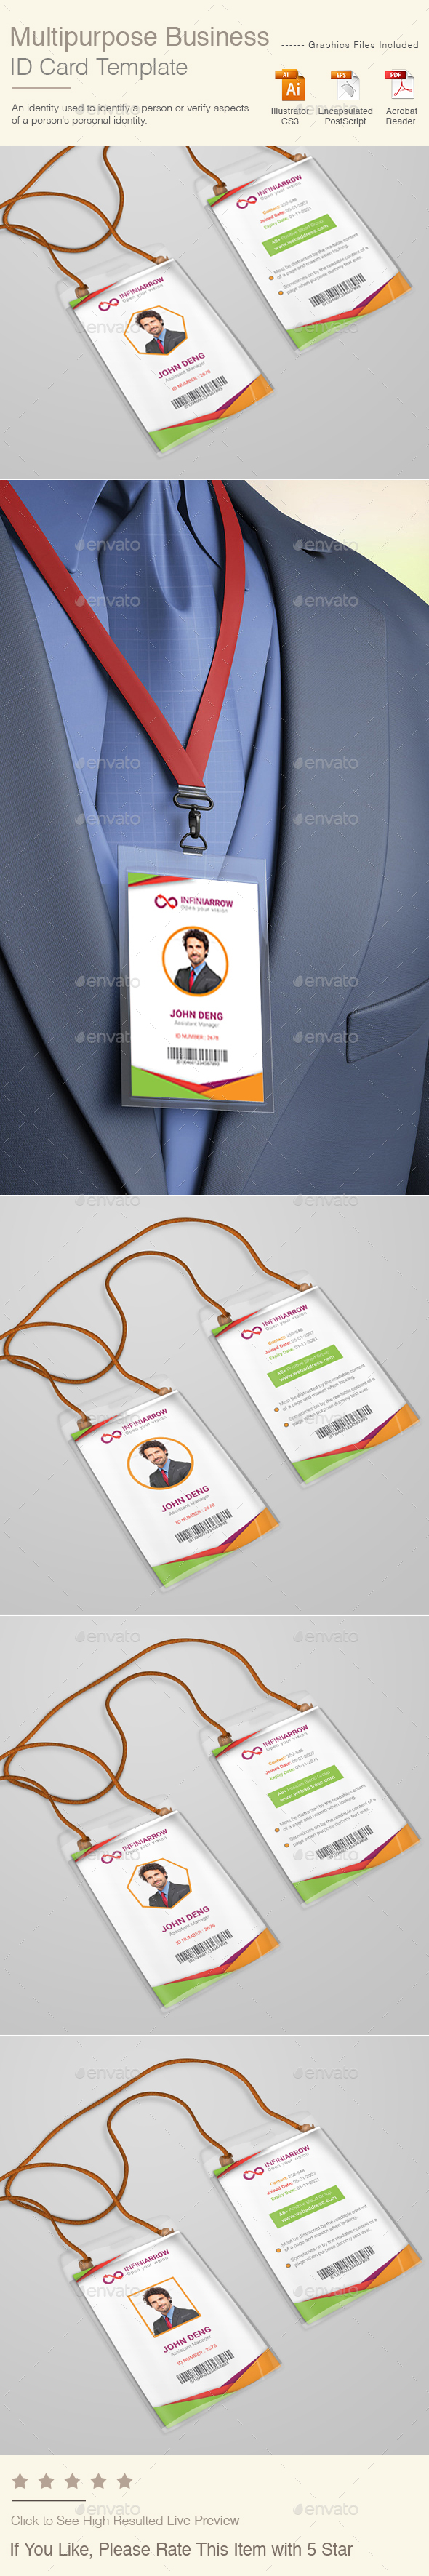 Multipurpose Business ID Card Template - Miscellaneous Print Templates